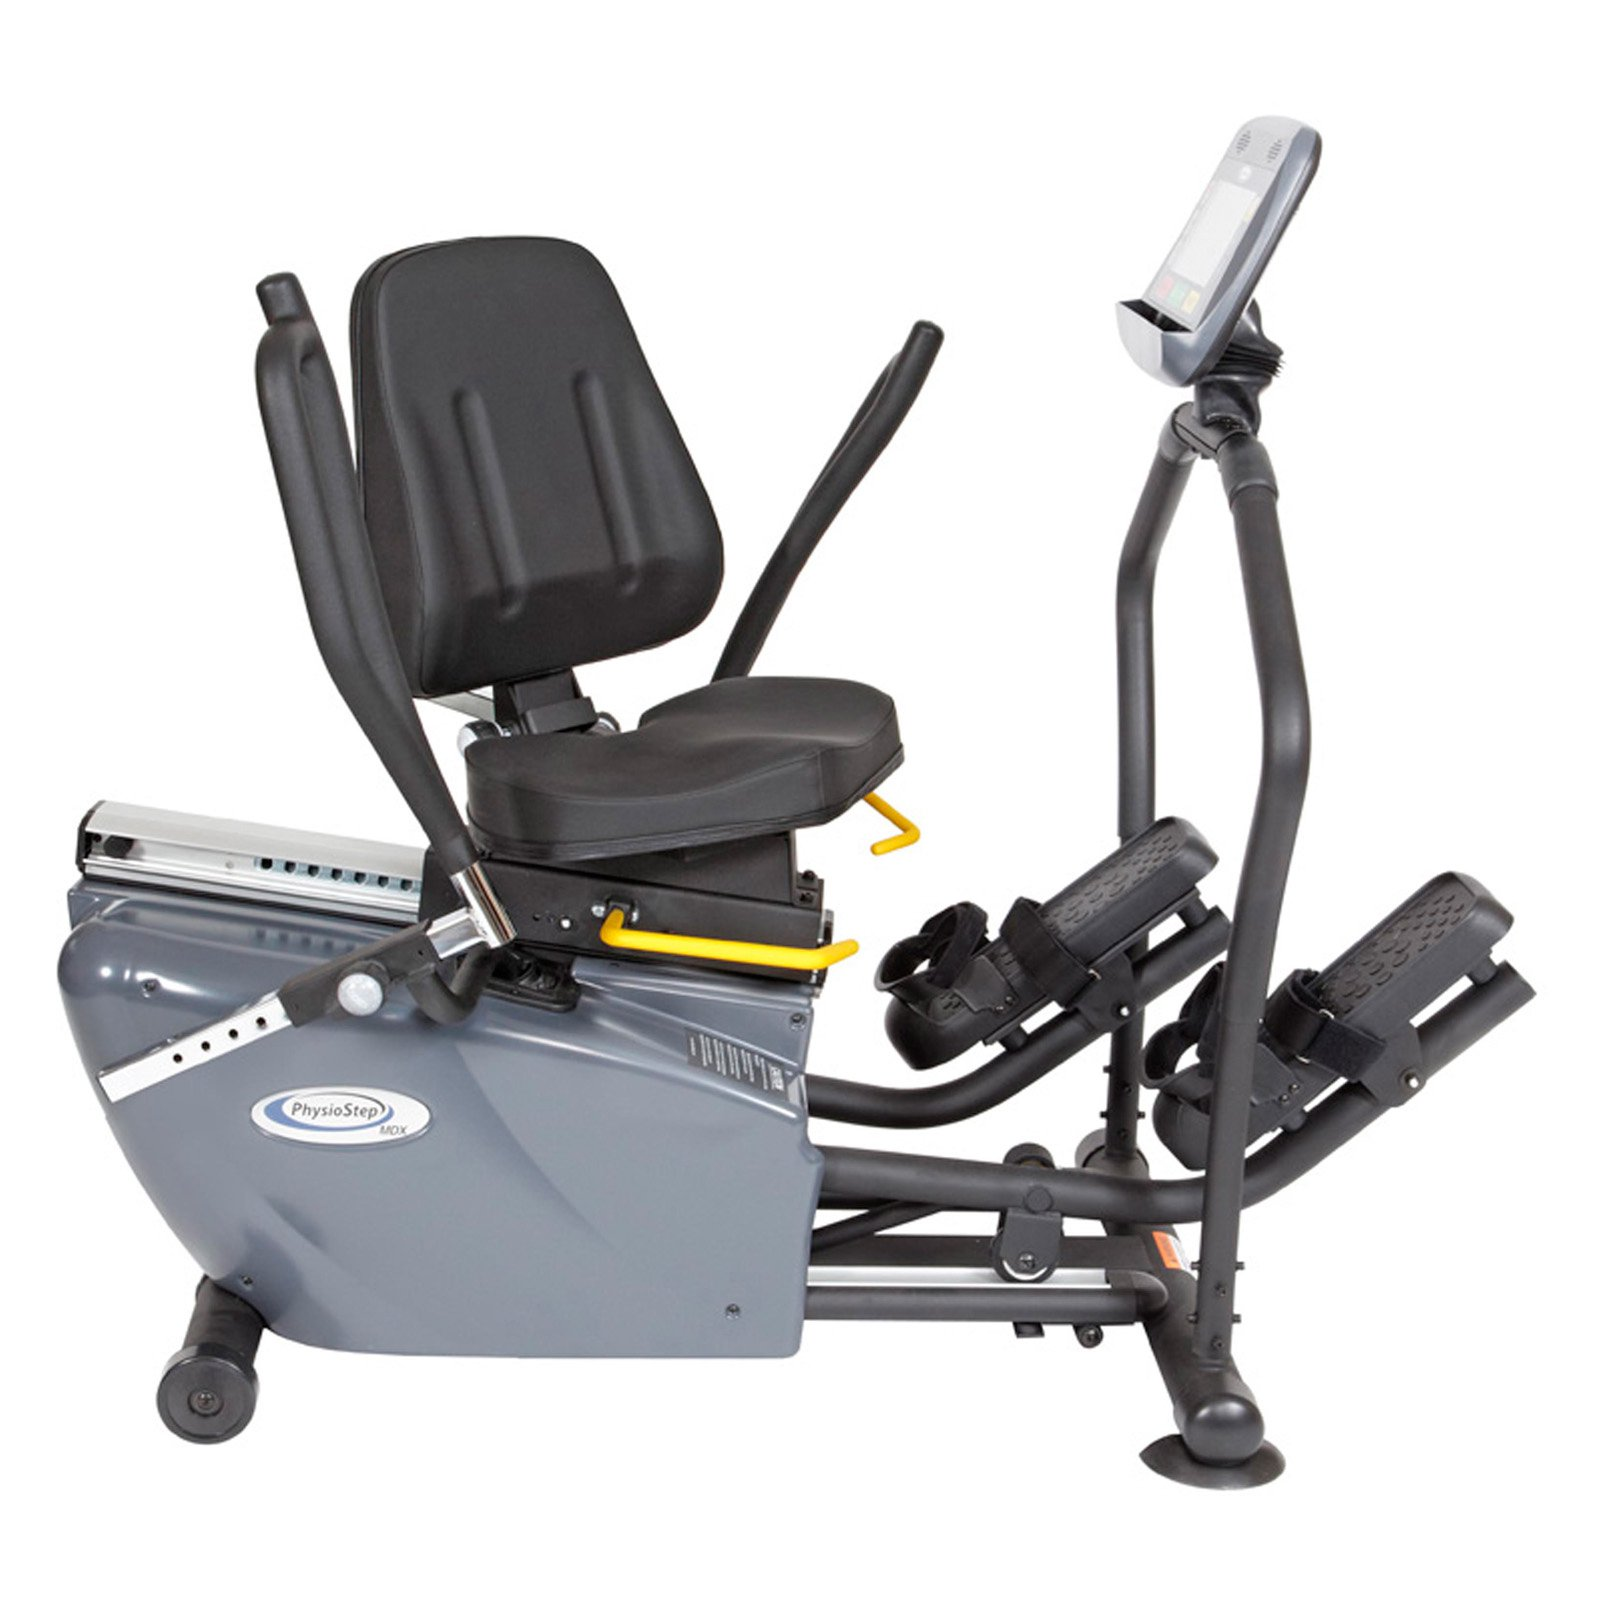 HCI Fitness PhysioStep MDX RXT-1000 Recumbent Elliptical Crosstrainer with Swivel Seat